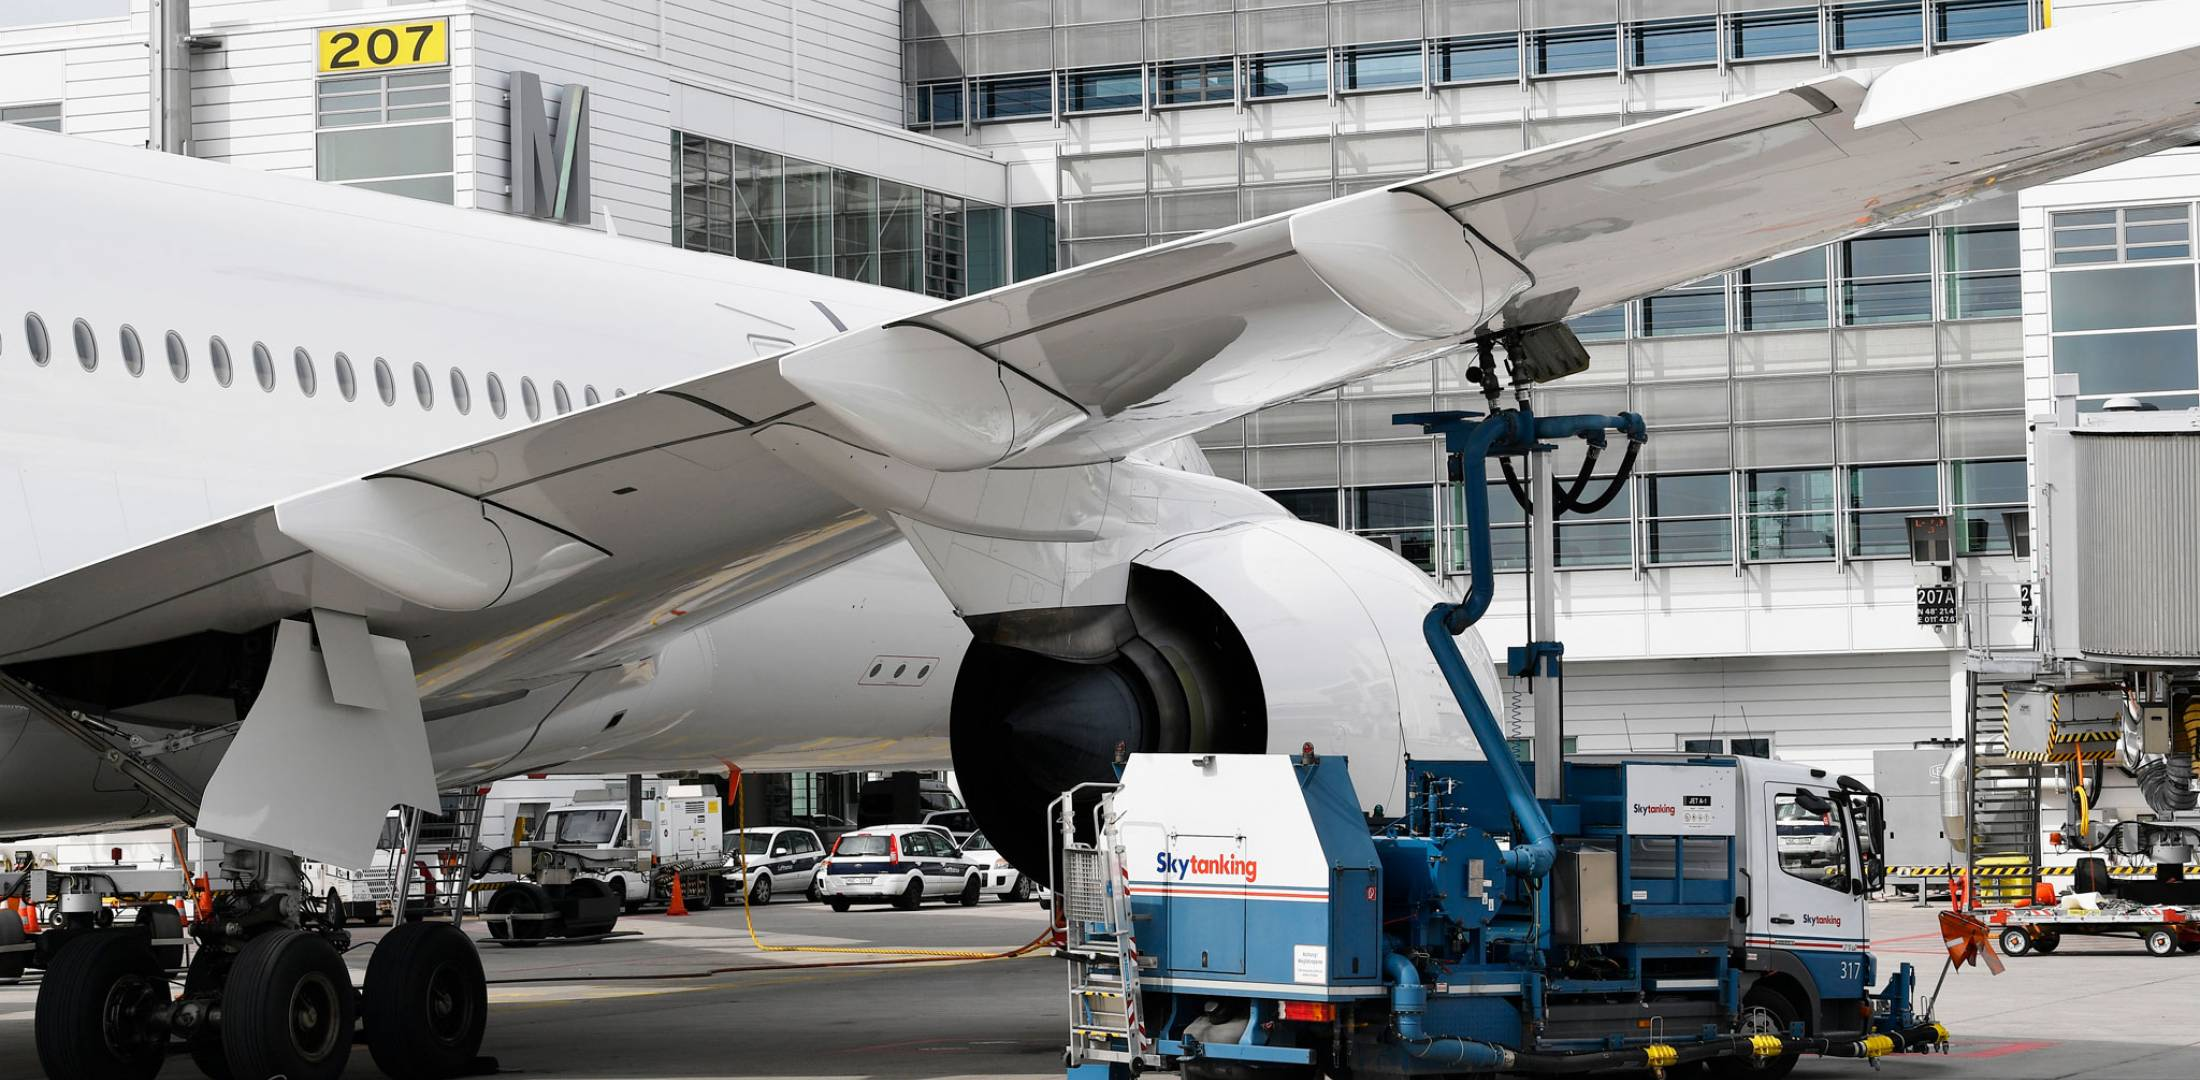 commercial aircraft refueling at Munich Airport